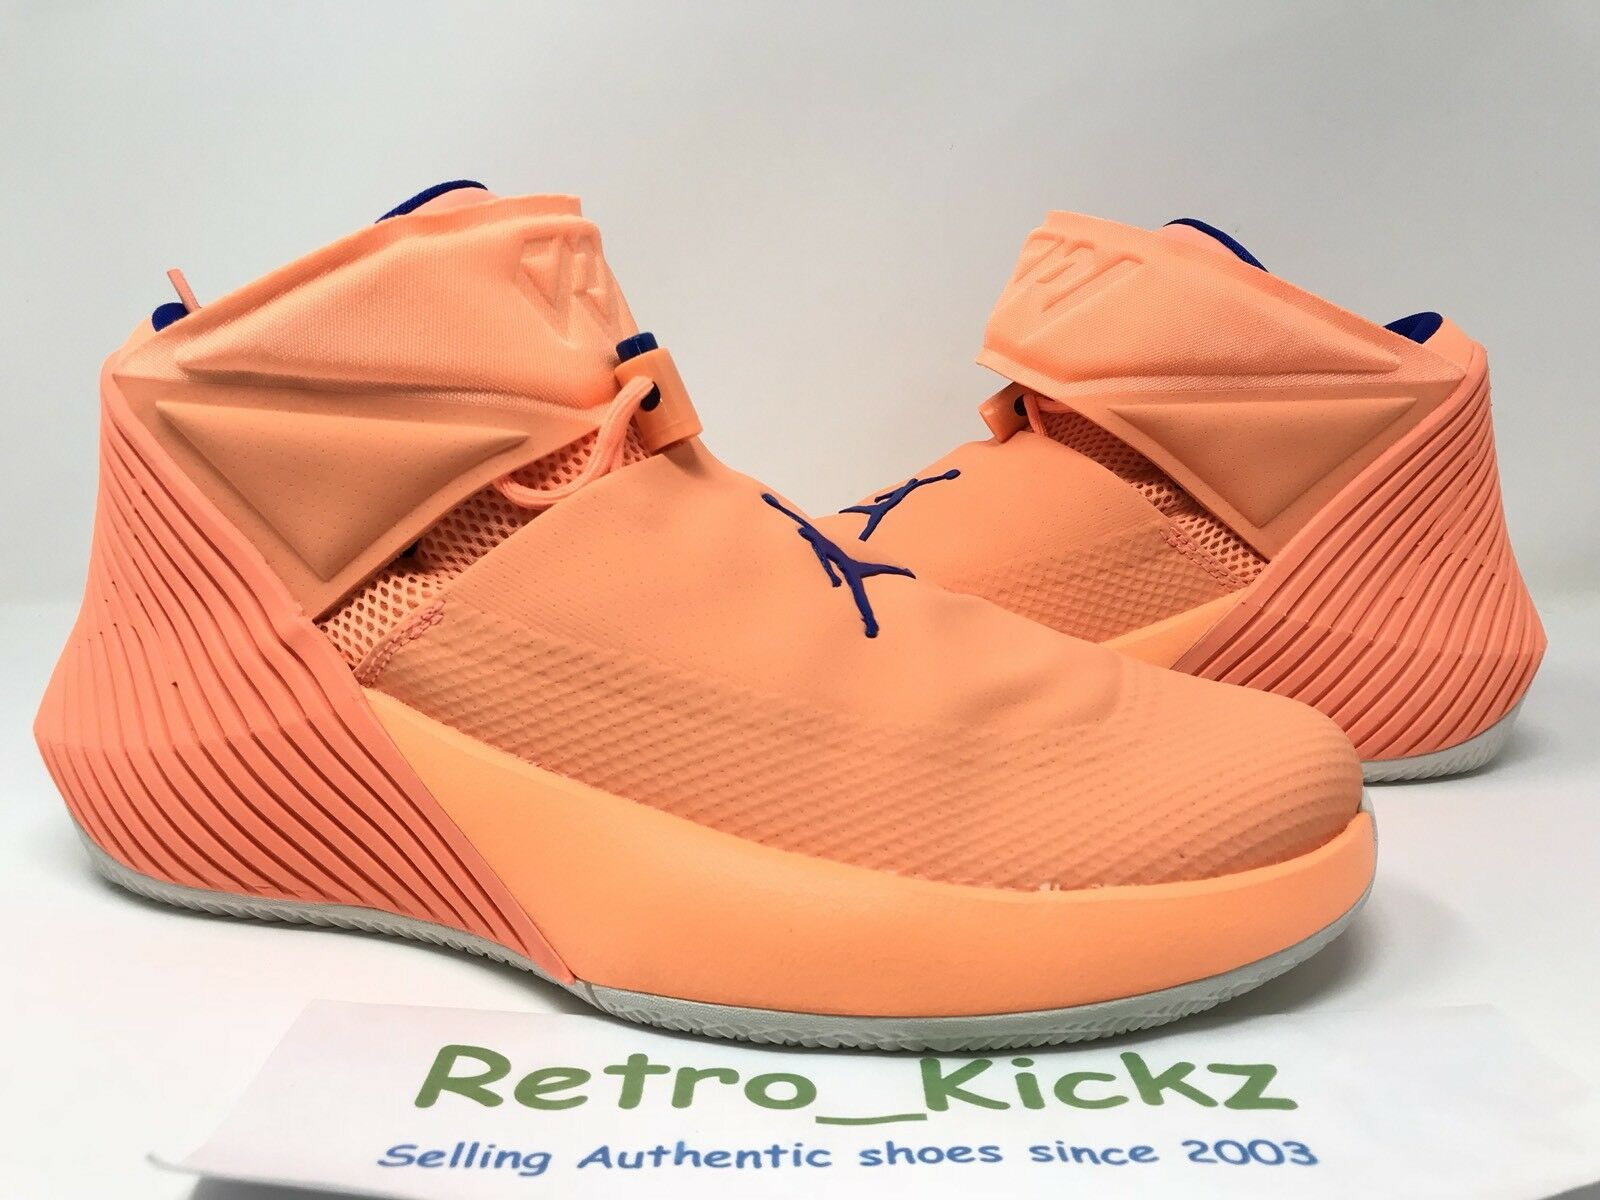 AA2510 RUSSELL 800 AIR JORDAN WHY NOT ZER0.1 RUSSELL AA2510 WESTBROOK COTTON SHOT 10 Uomo 75cb79